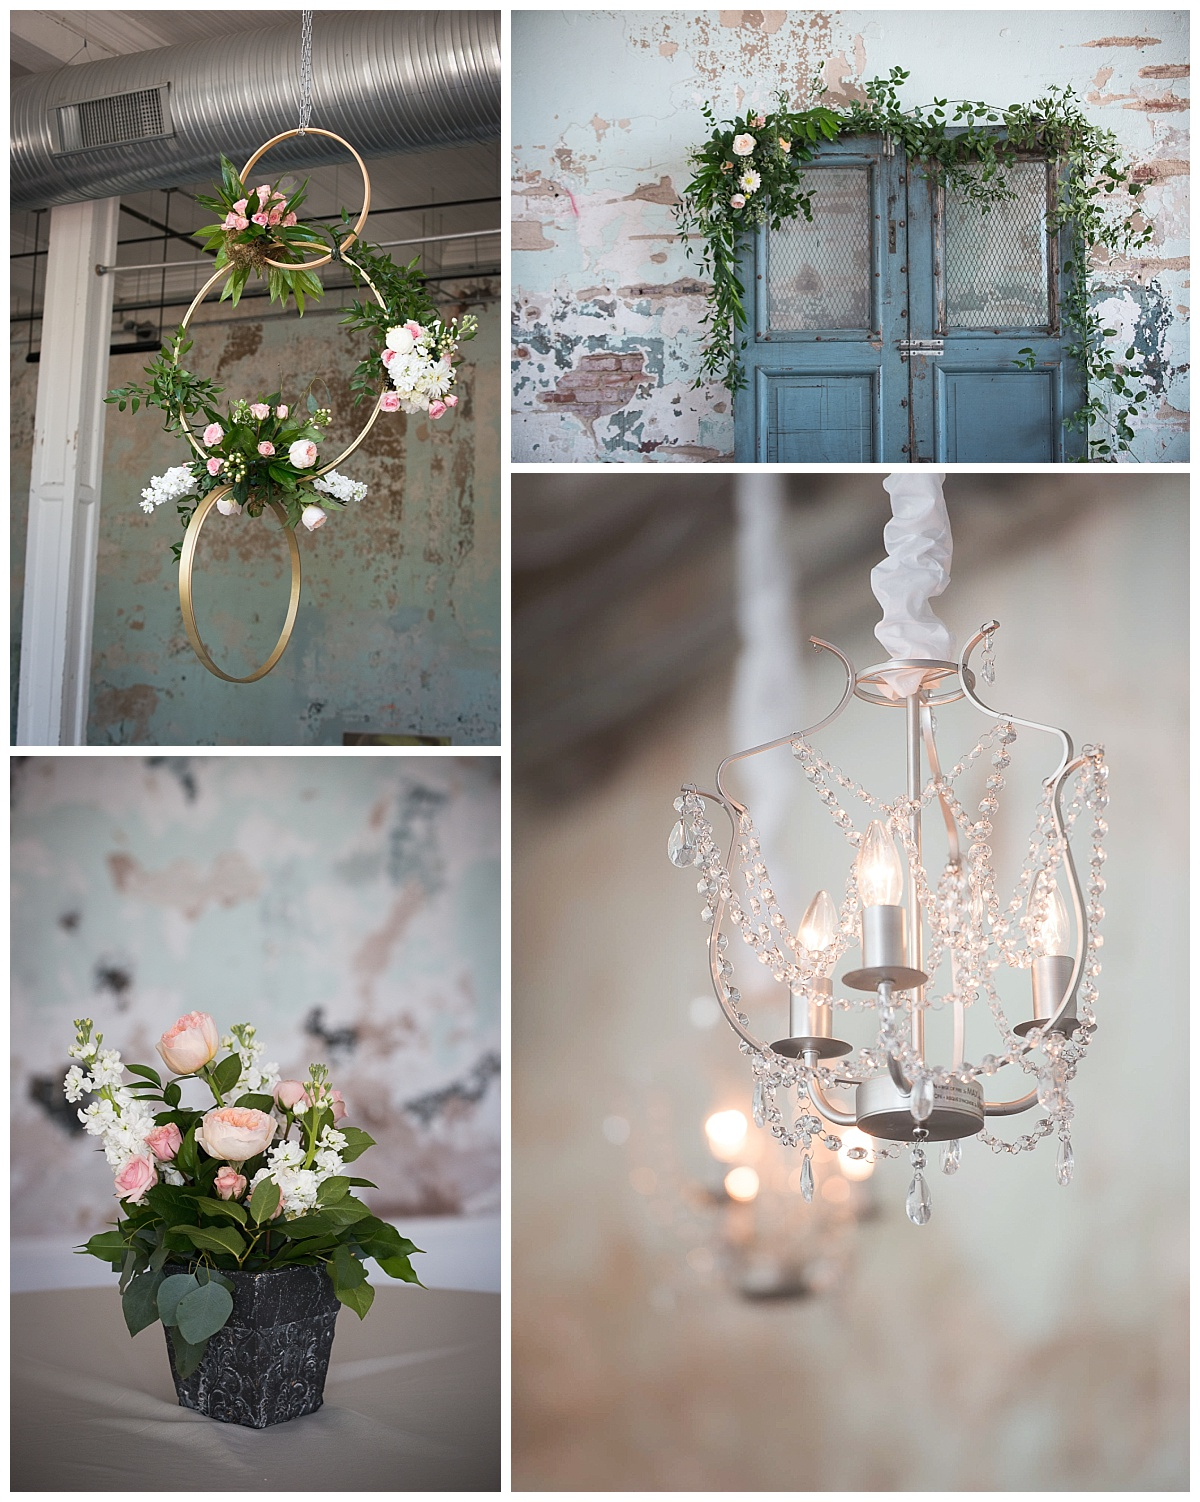 701 Whaley details including crystal chandlier and hanging flowers